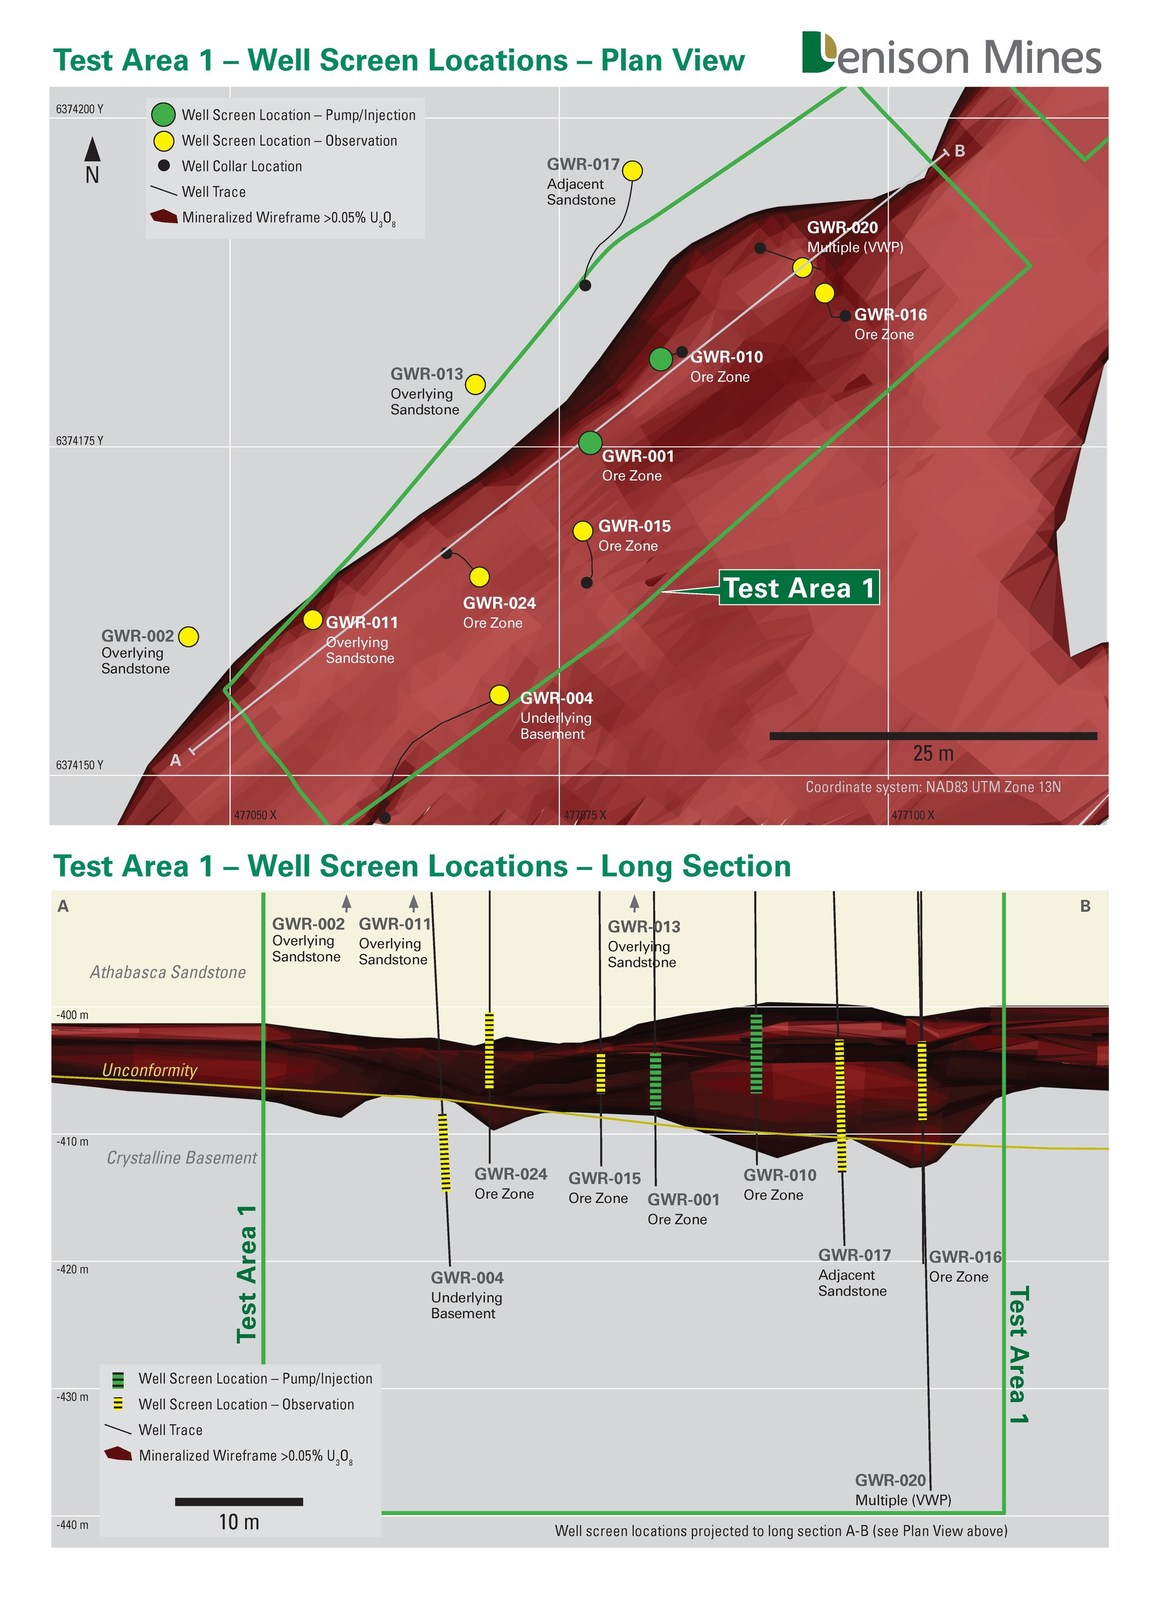 Figure 2. Plan map and long section showing Pump/Injection and Observation wells completed for ISR field testing in Test Area 1.